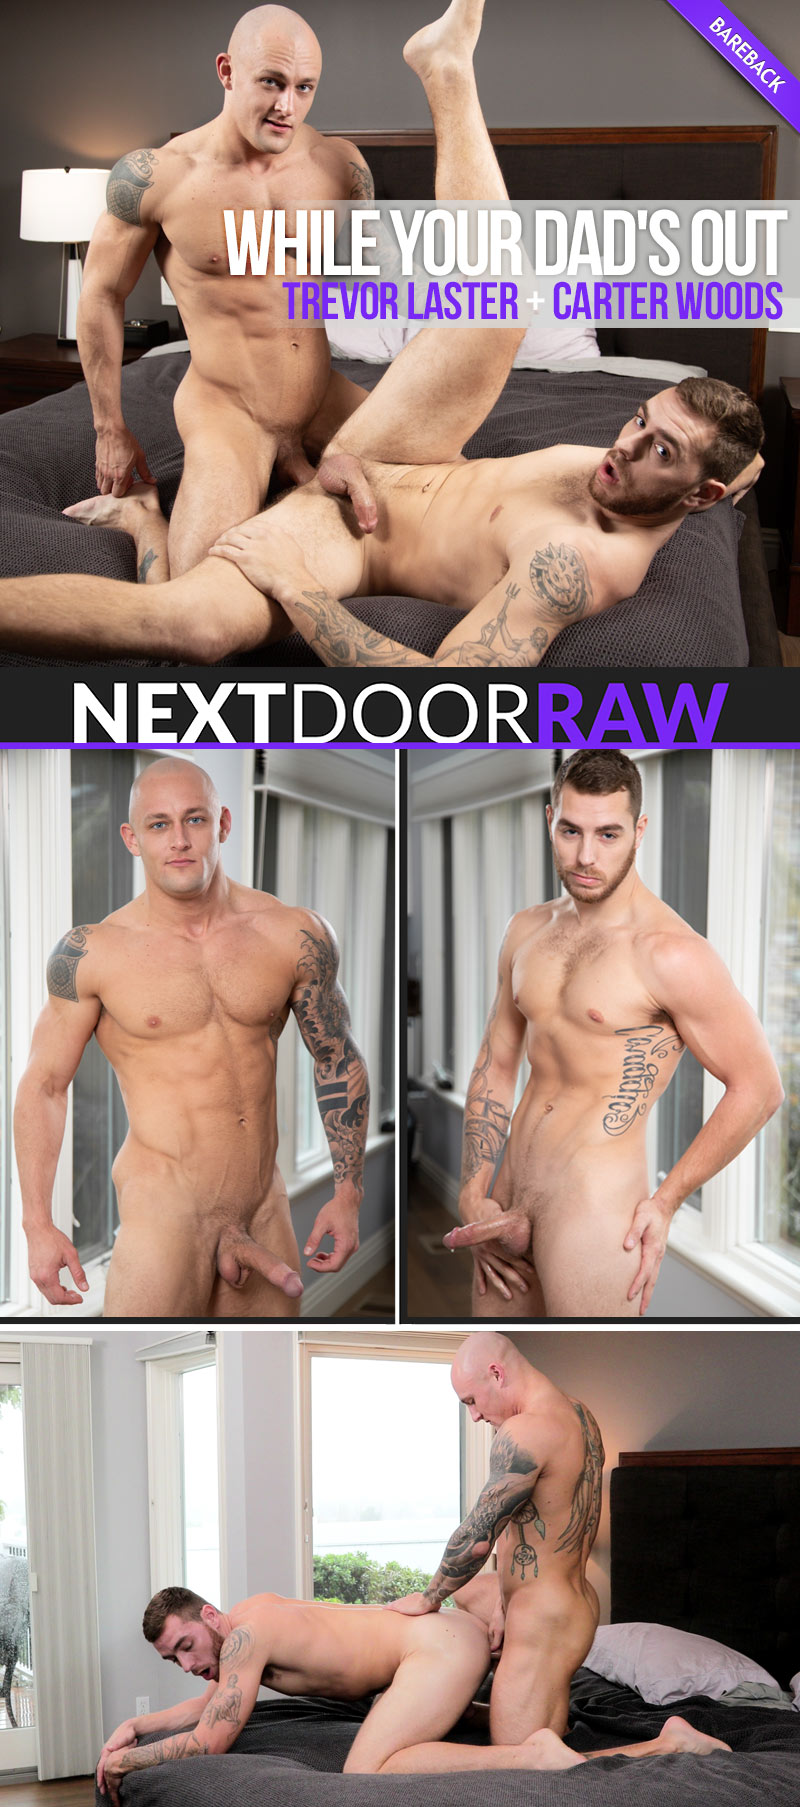 While Your Dad's Out (Trevor Laster Fucks Carter Woods) (Bareback) at NextDoorRAW!